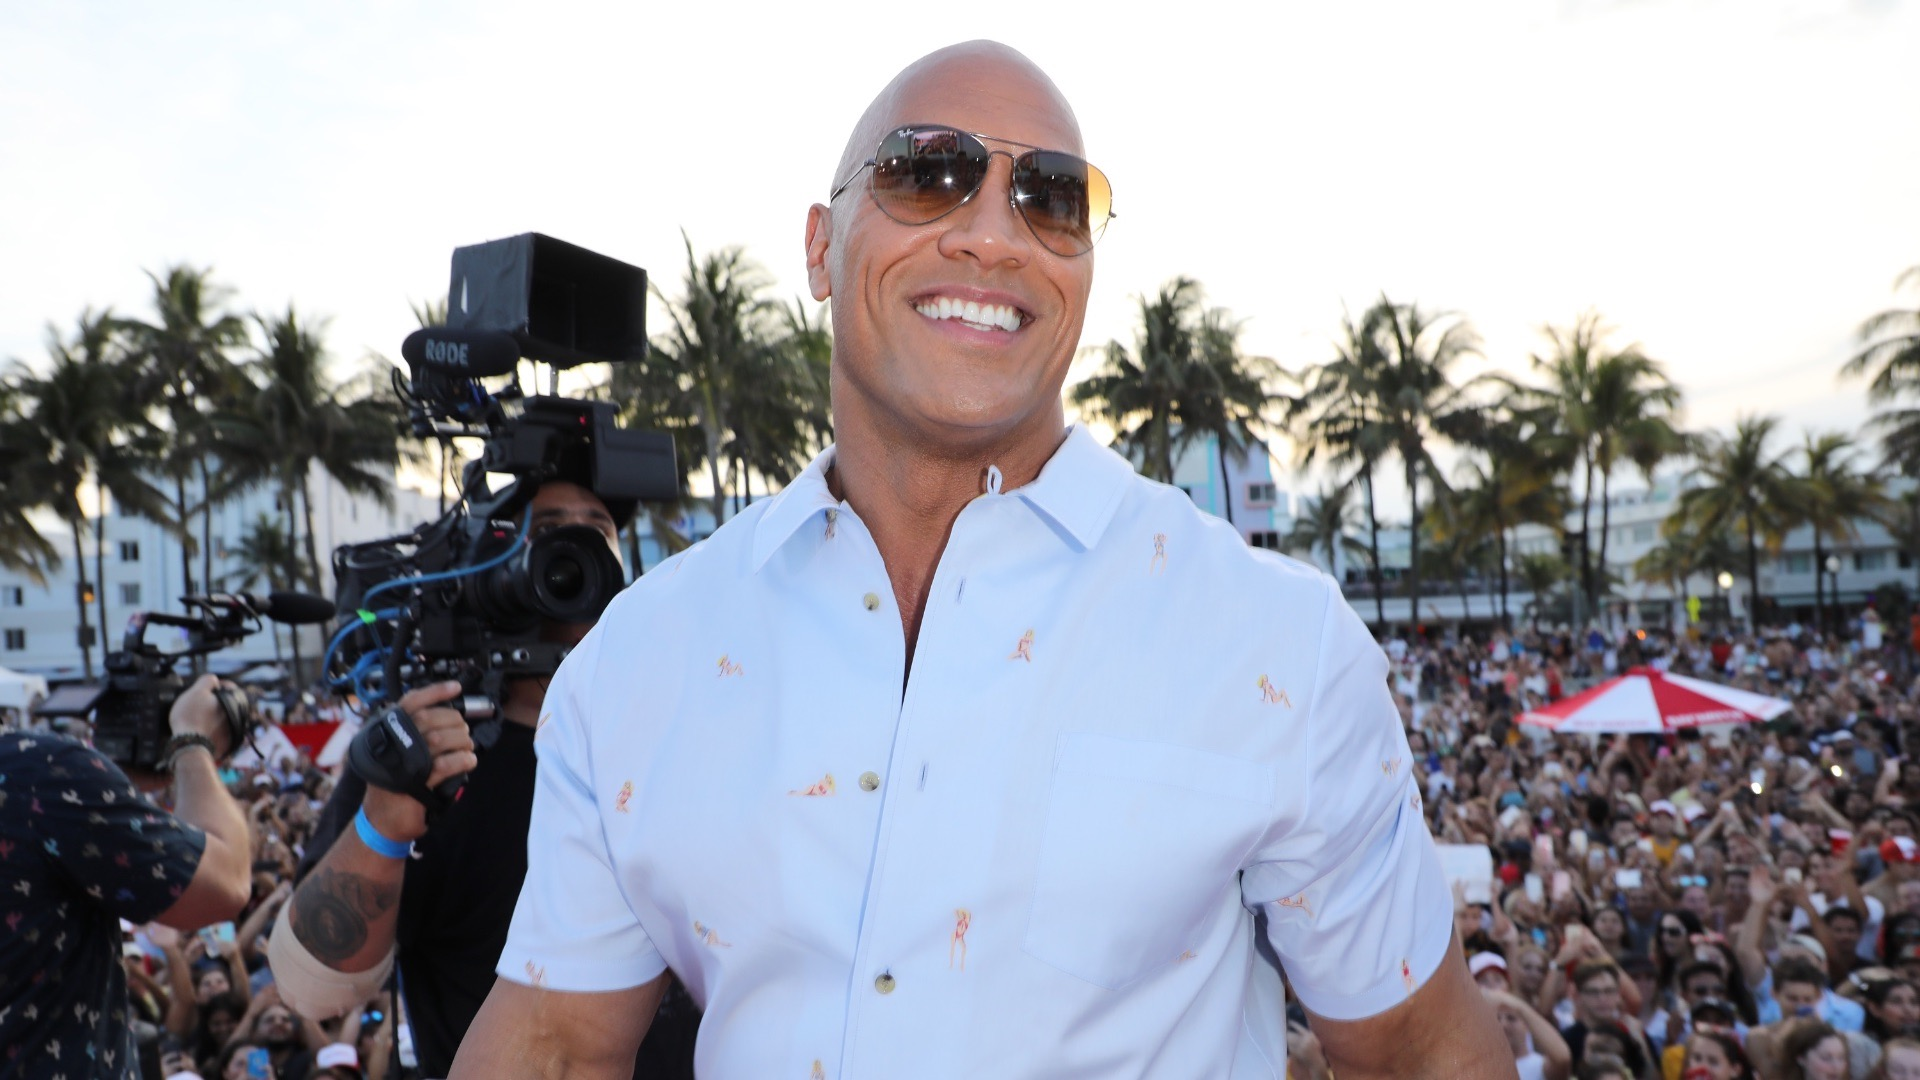 Baywatch star Dwayne Johnson.